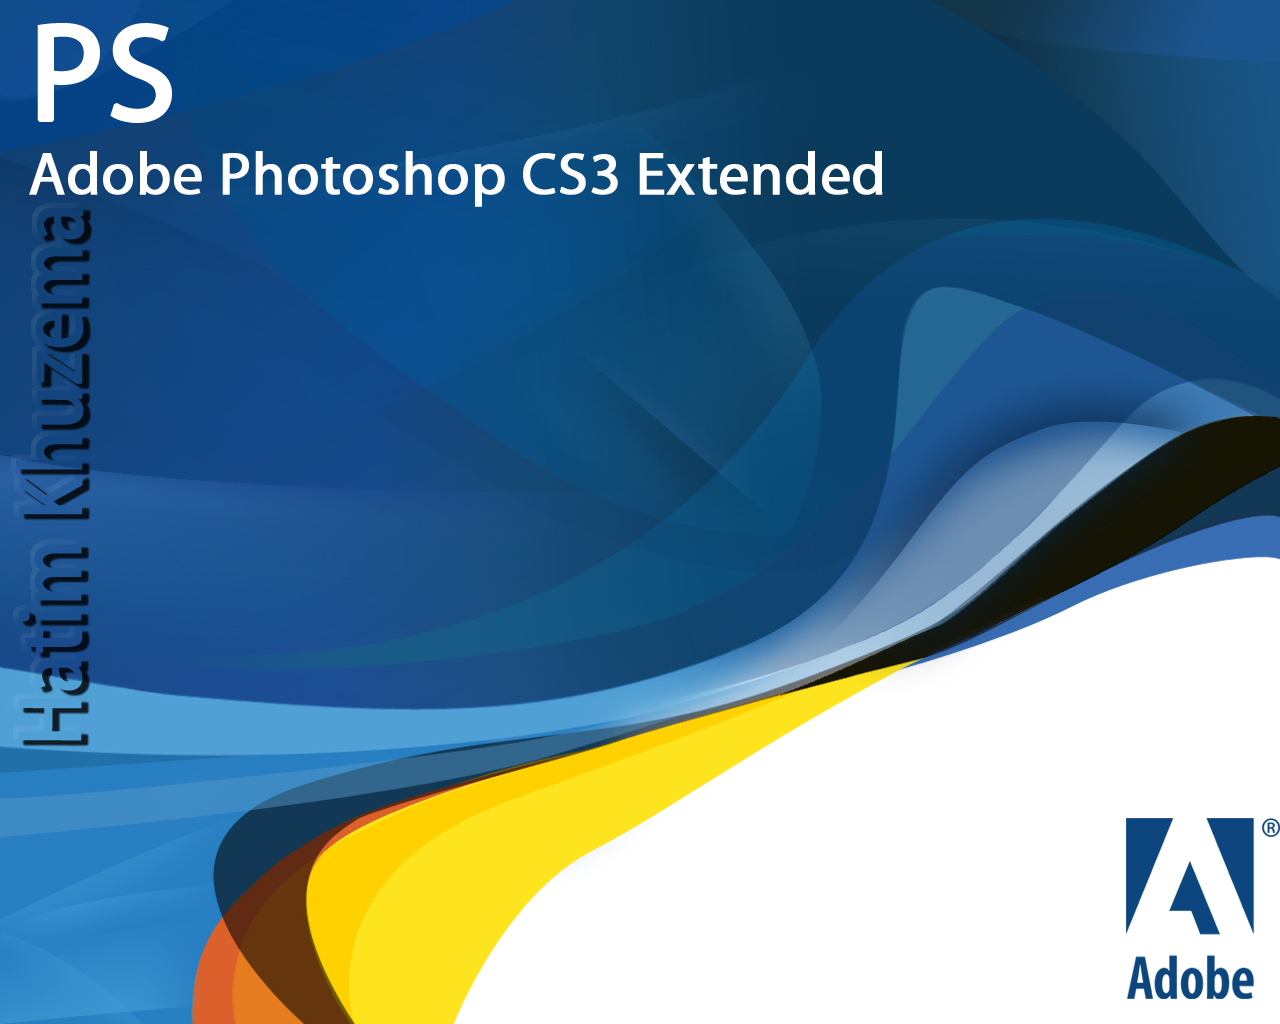 Adobe photoshop cs3 extended proper keygen and crack keygen